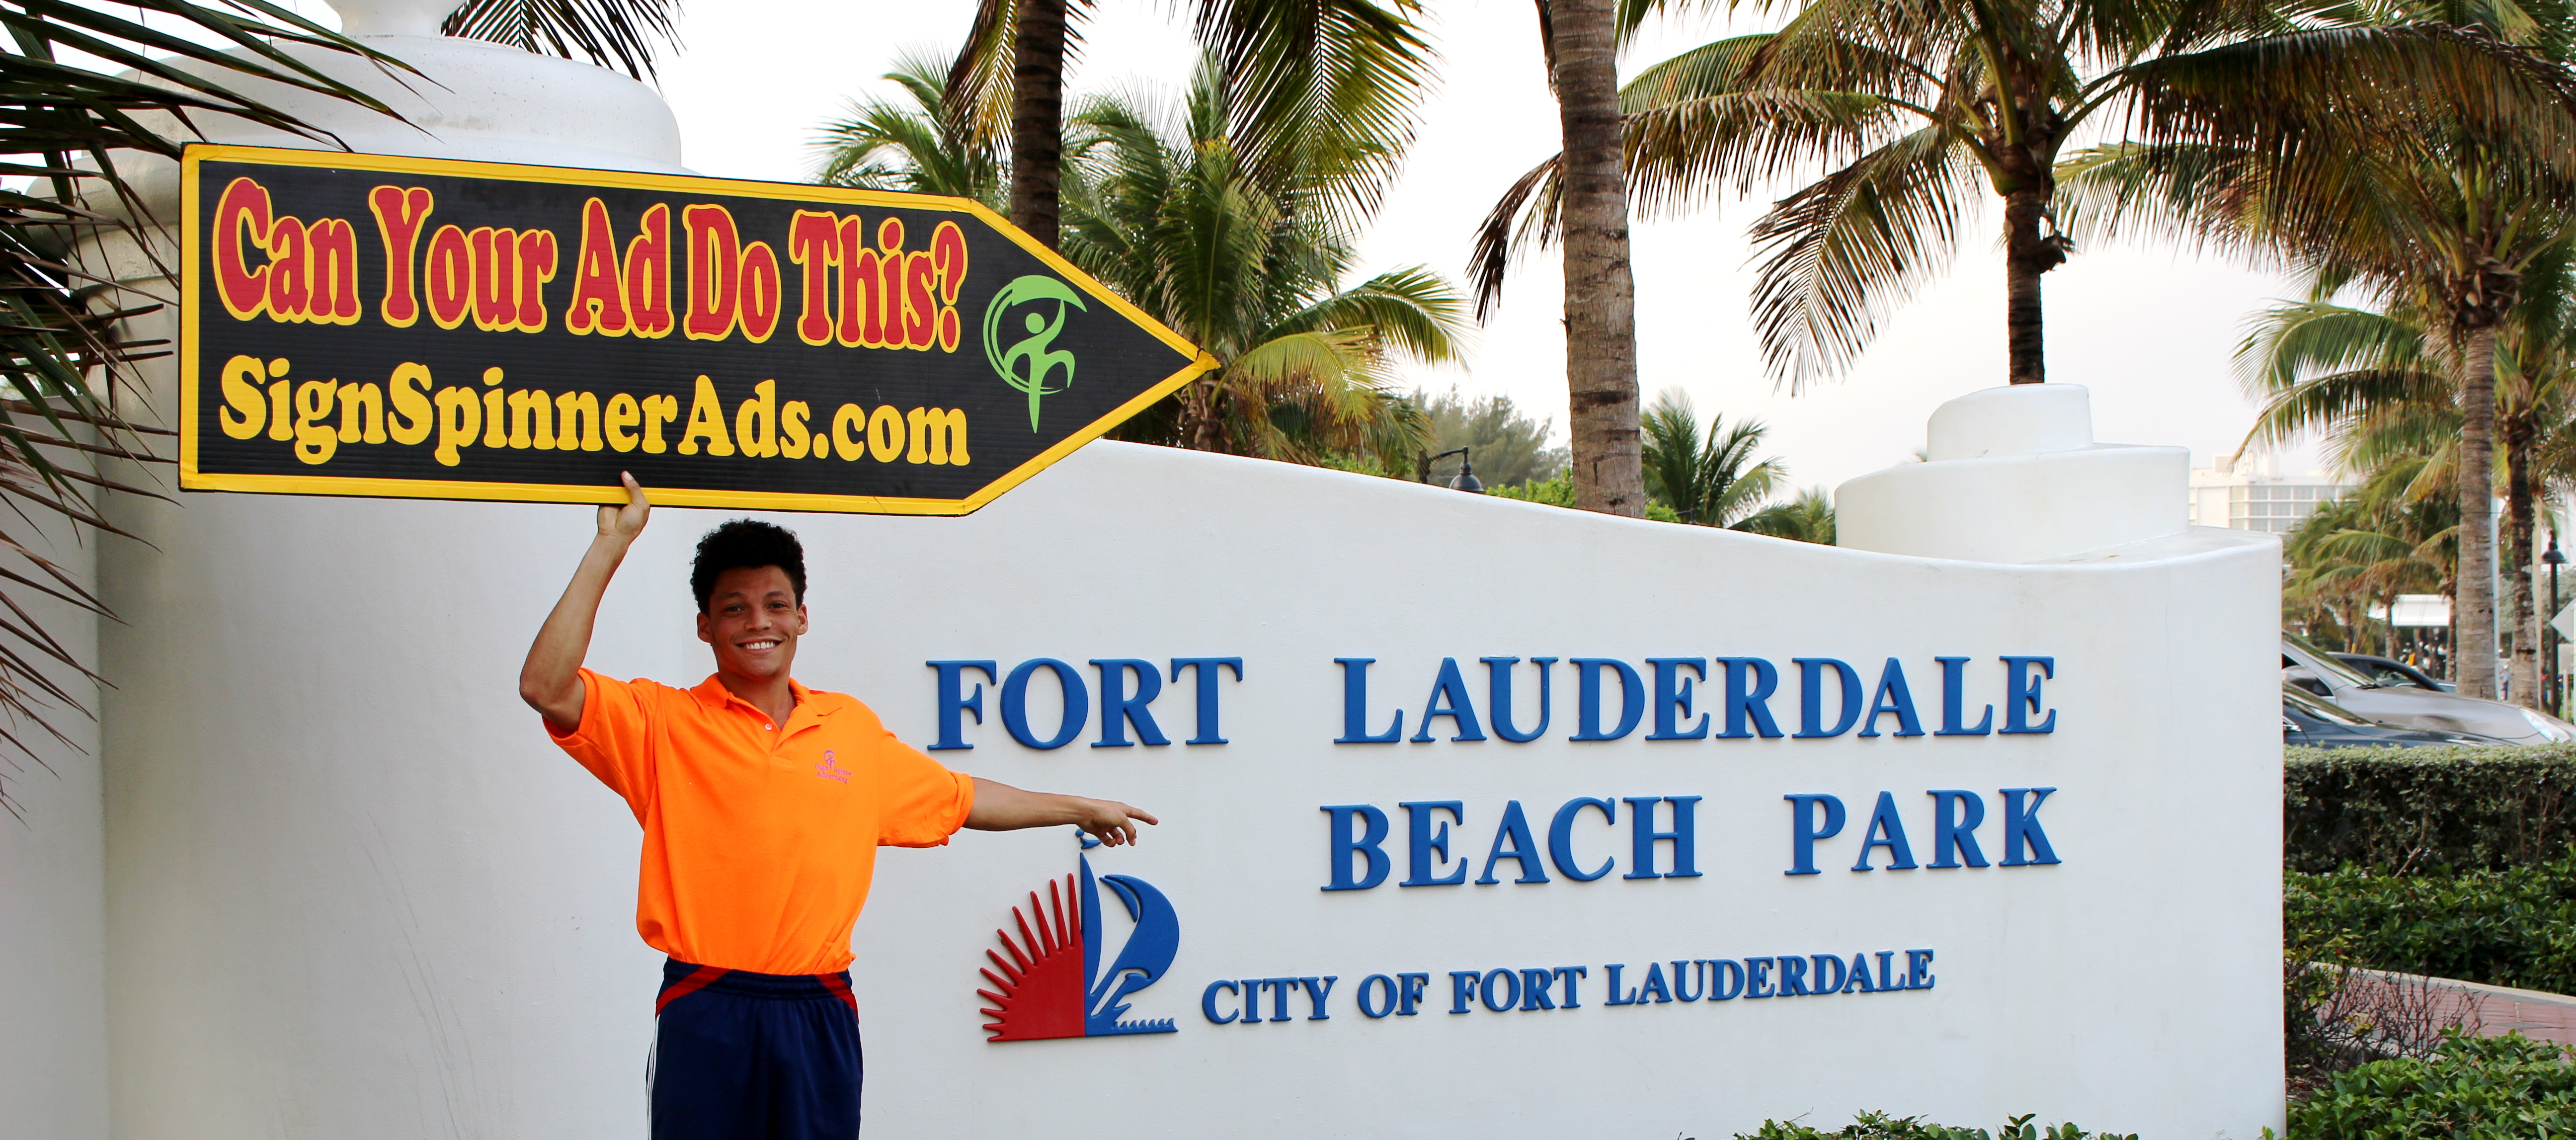 South Florida Sign Spinners - Miami | Fort Lauderdale | Boca Raton | West Palm Beach